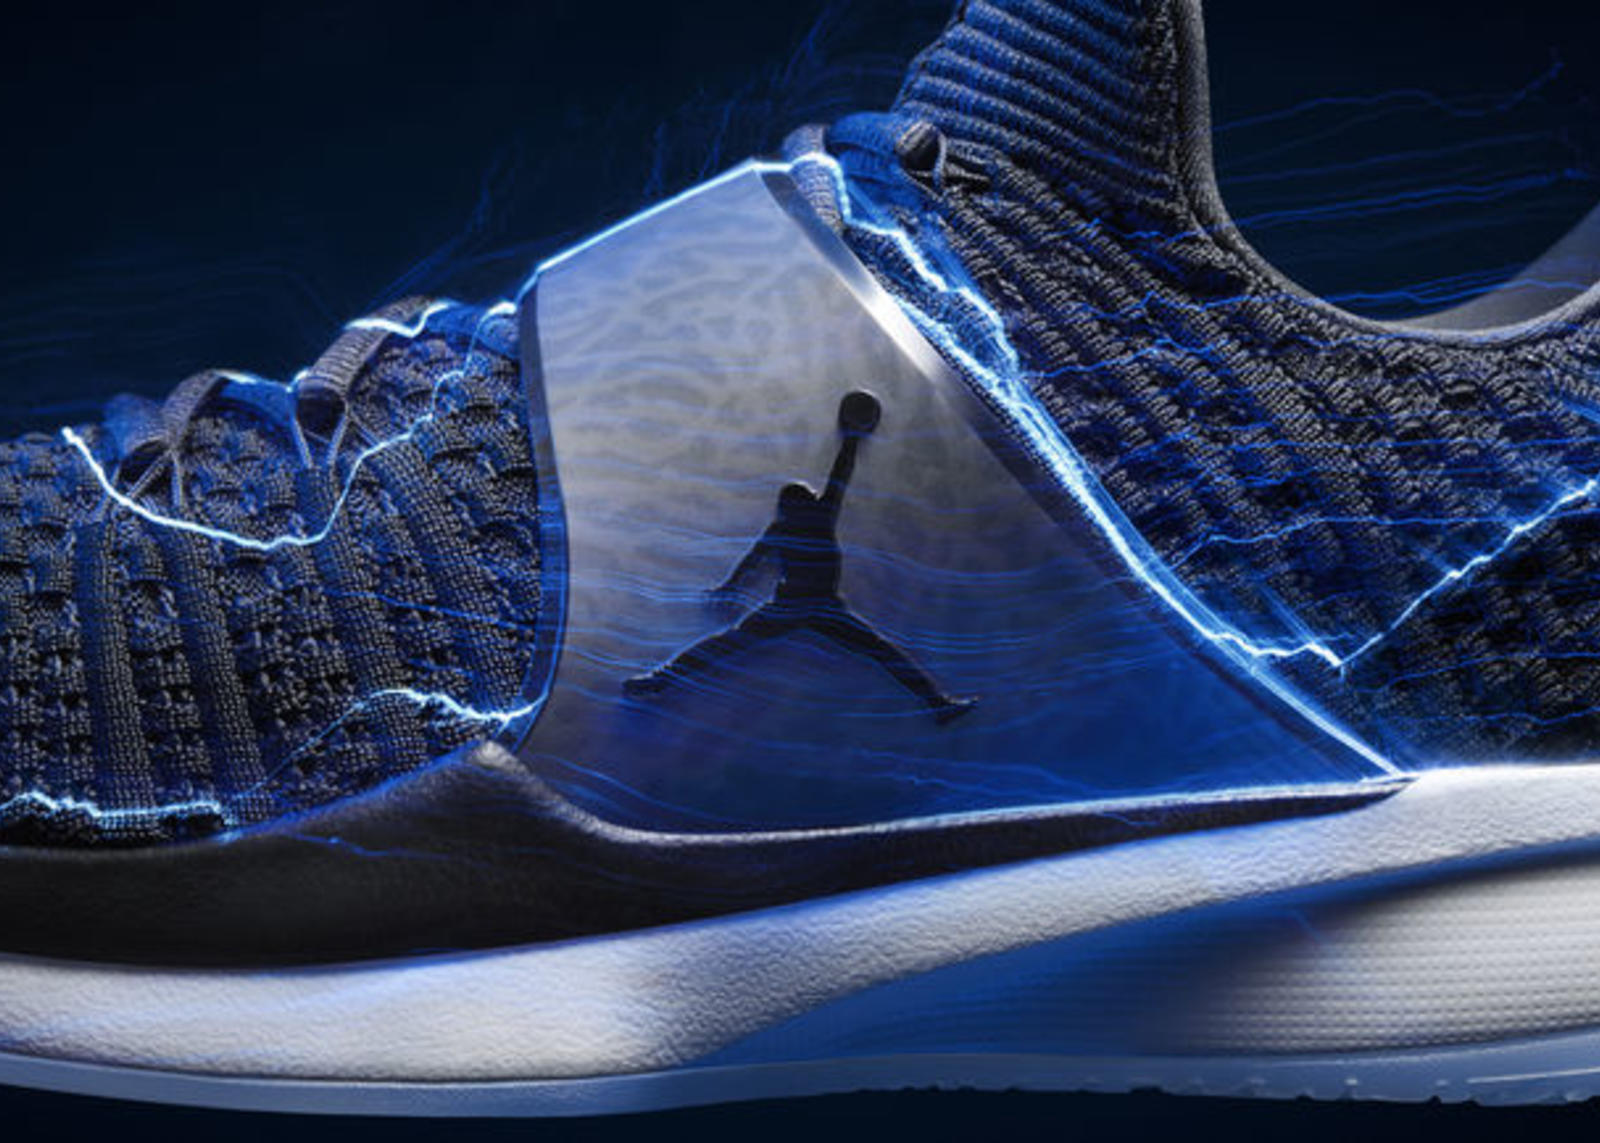 Introducing the Jordan Trainer 2 Flyknit 5